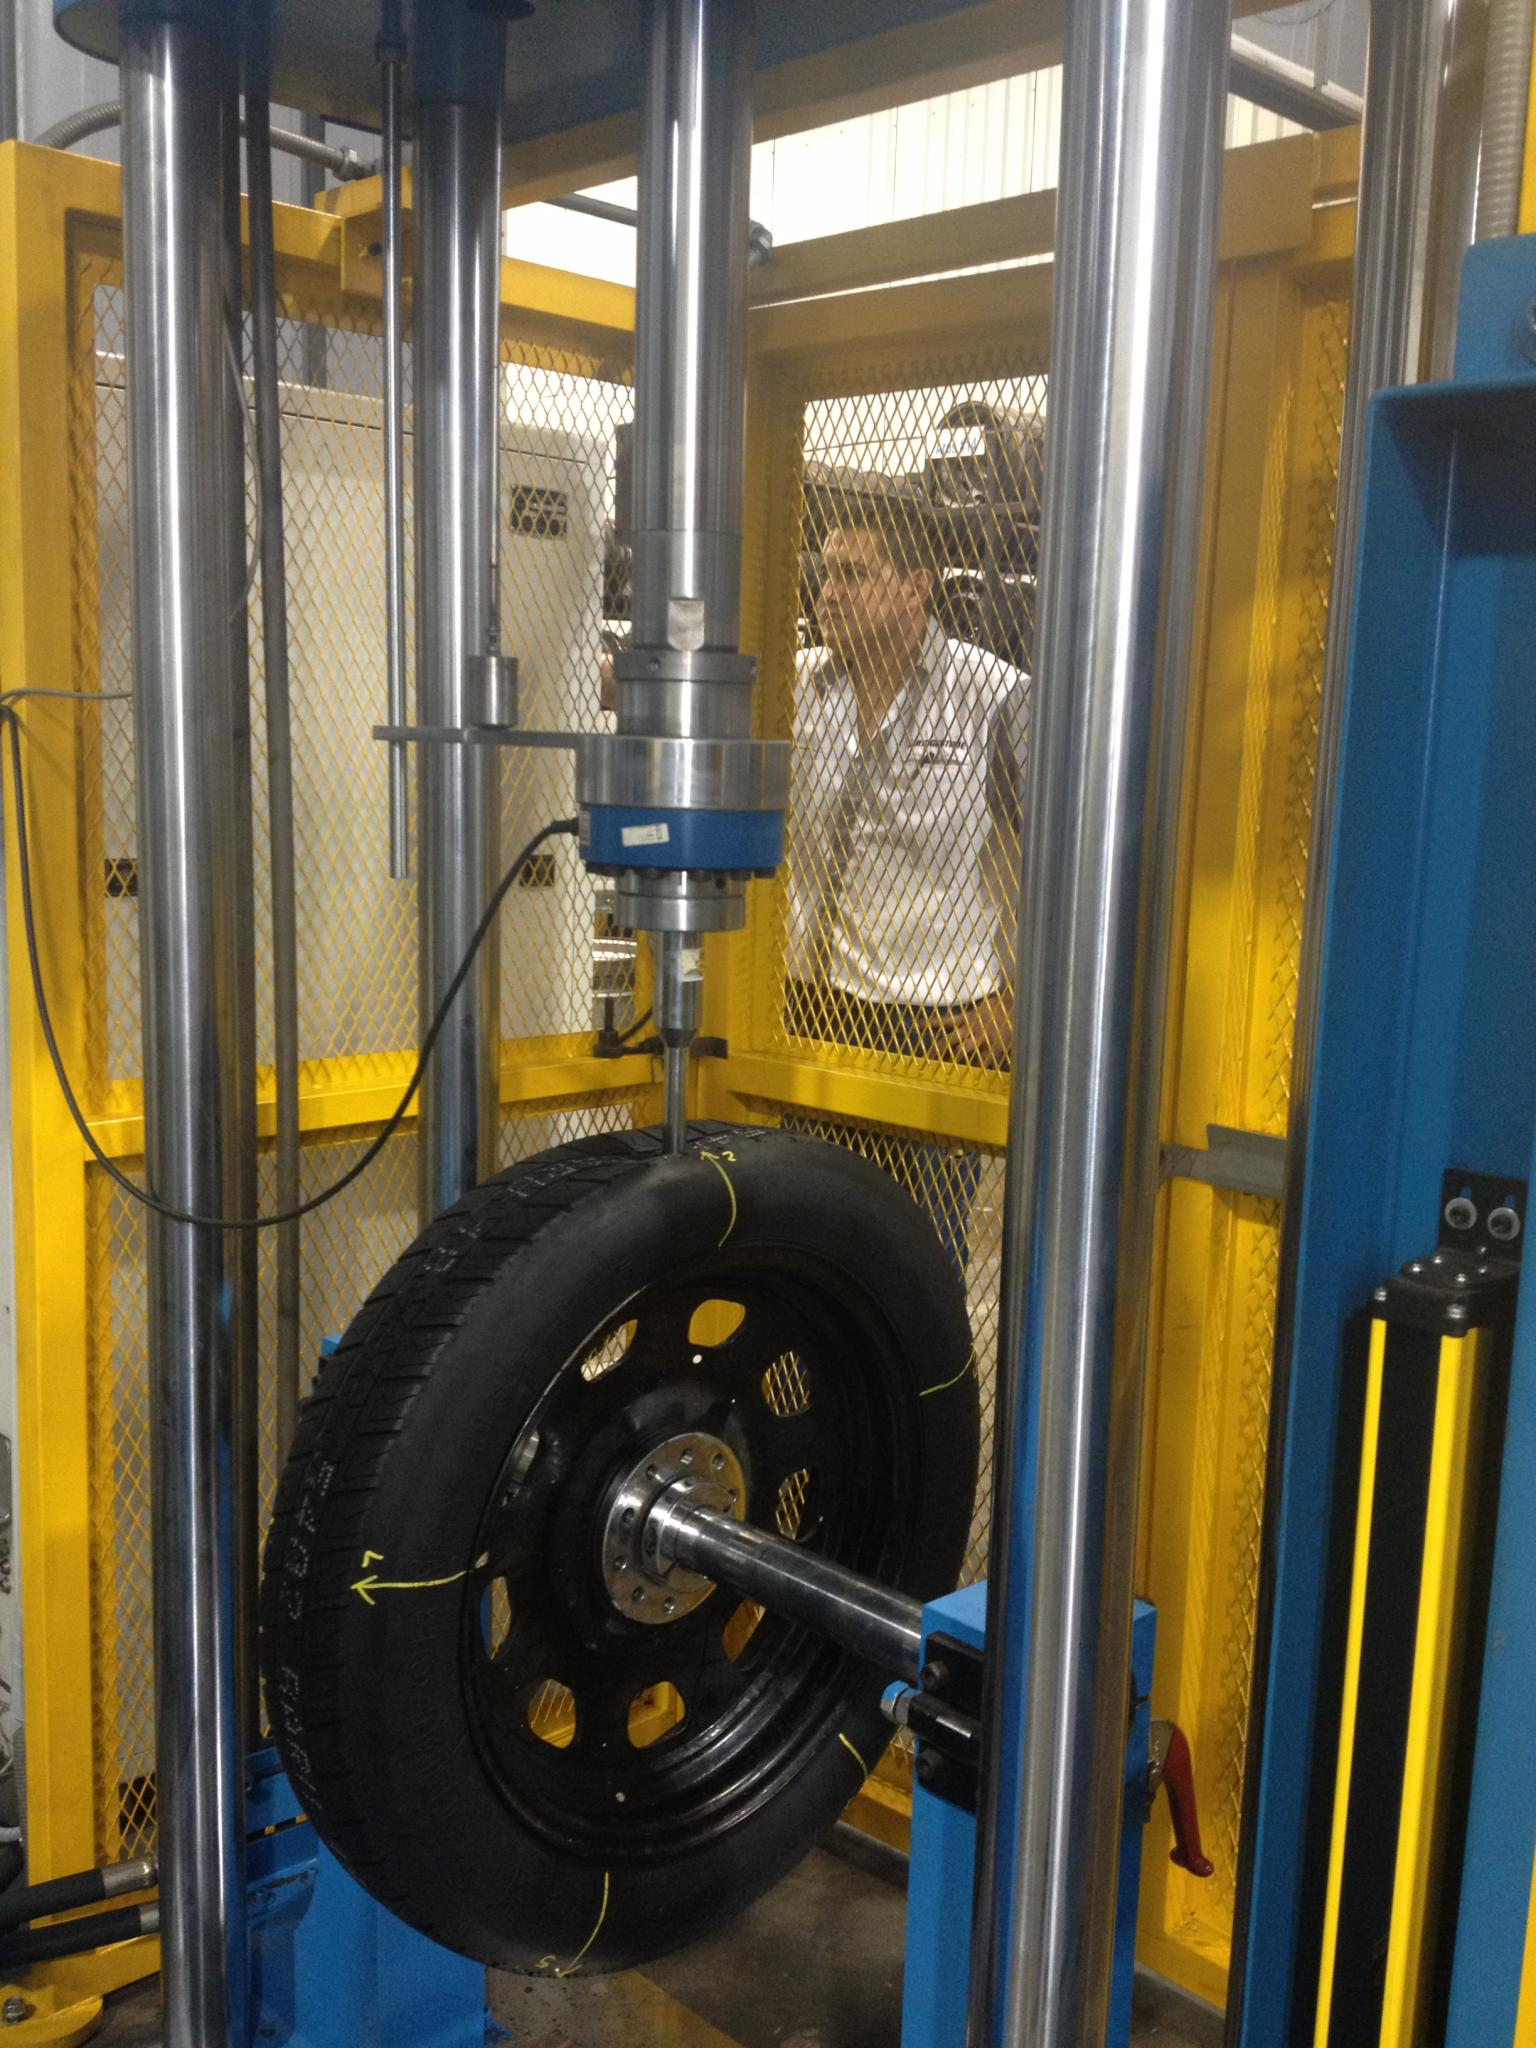 A project team at Bridgestone's Costa Rica plant used Minitab Statistical Software to increase capacity and certify new tyres more efficiently